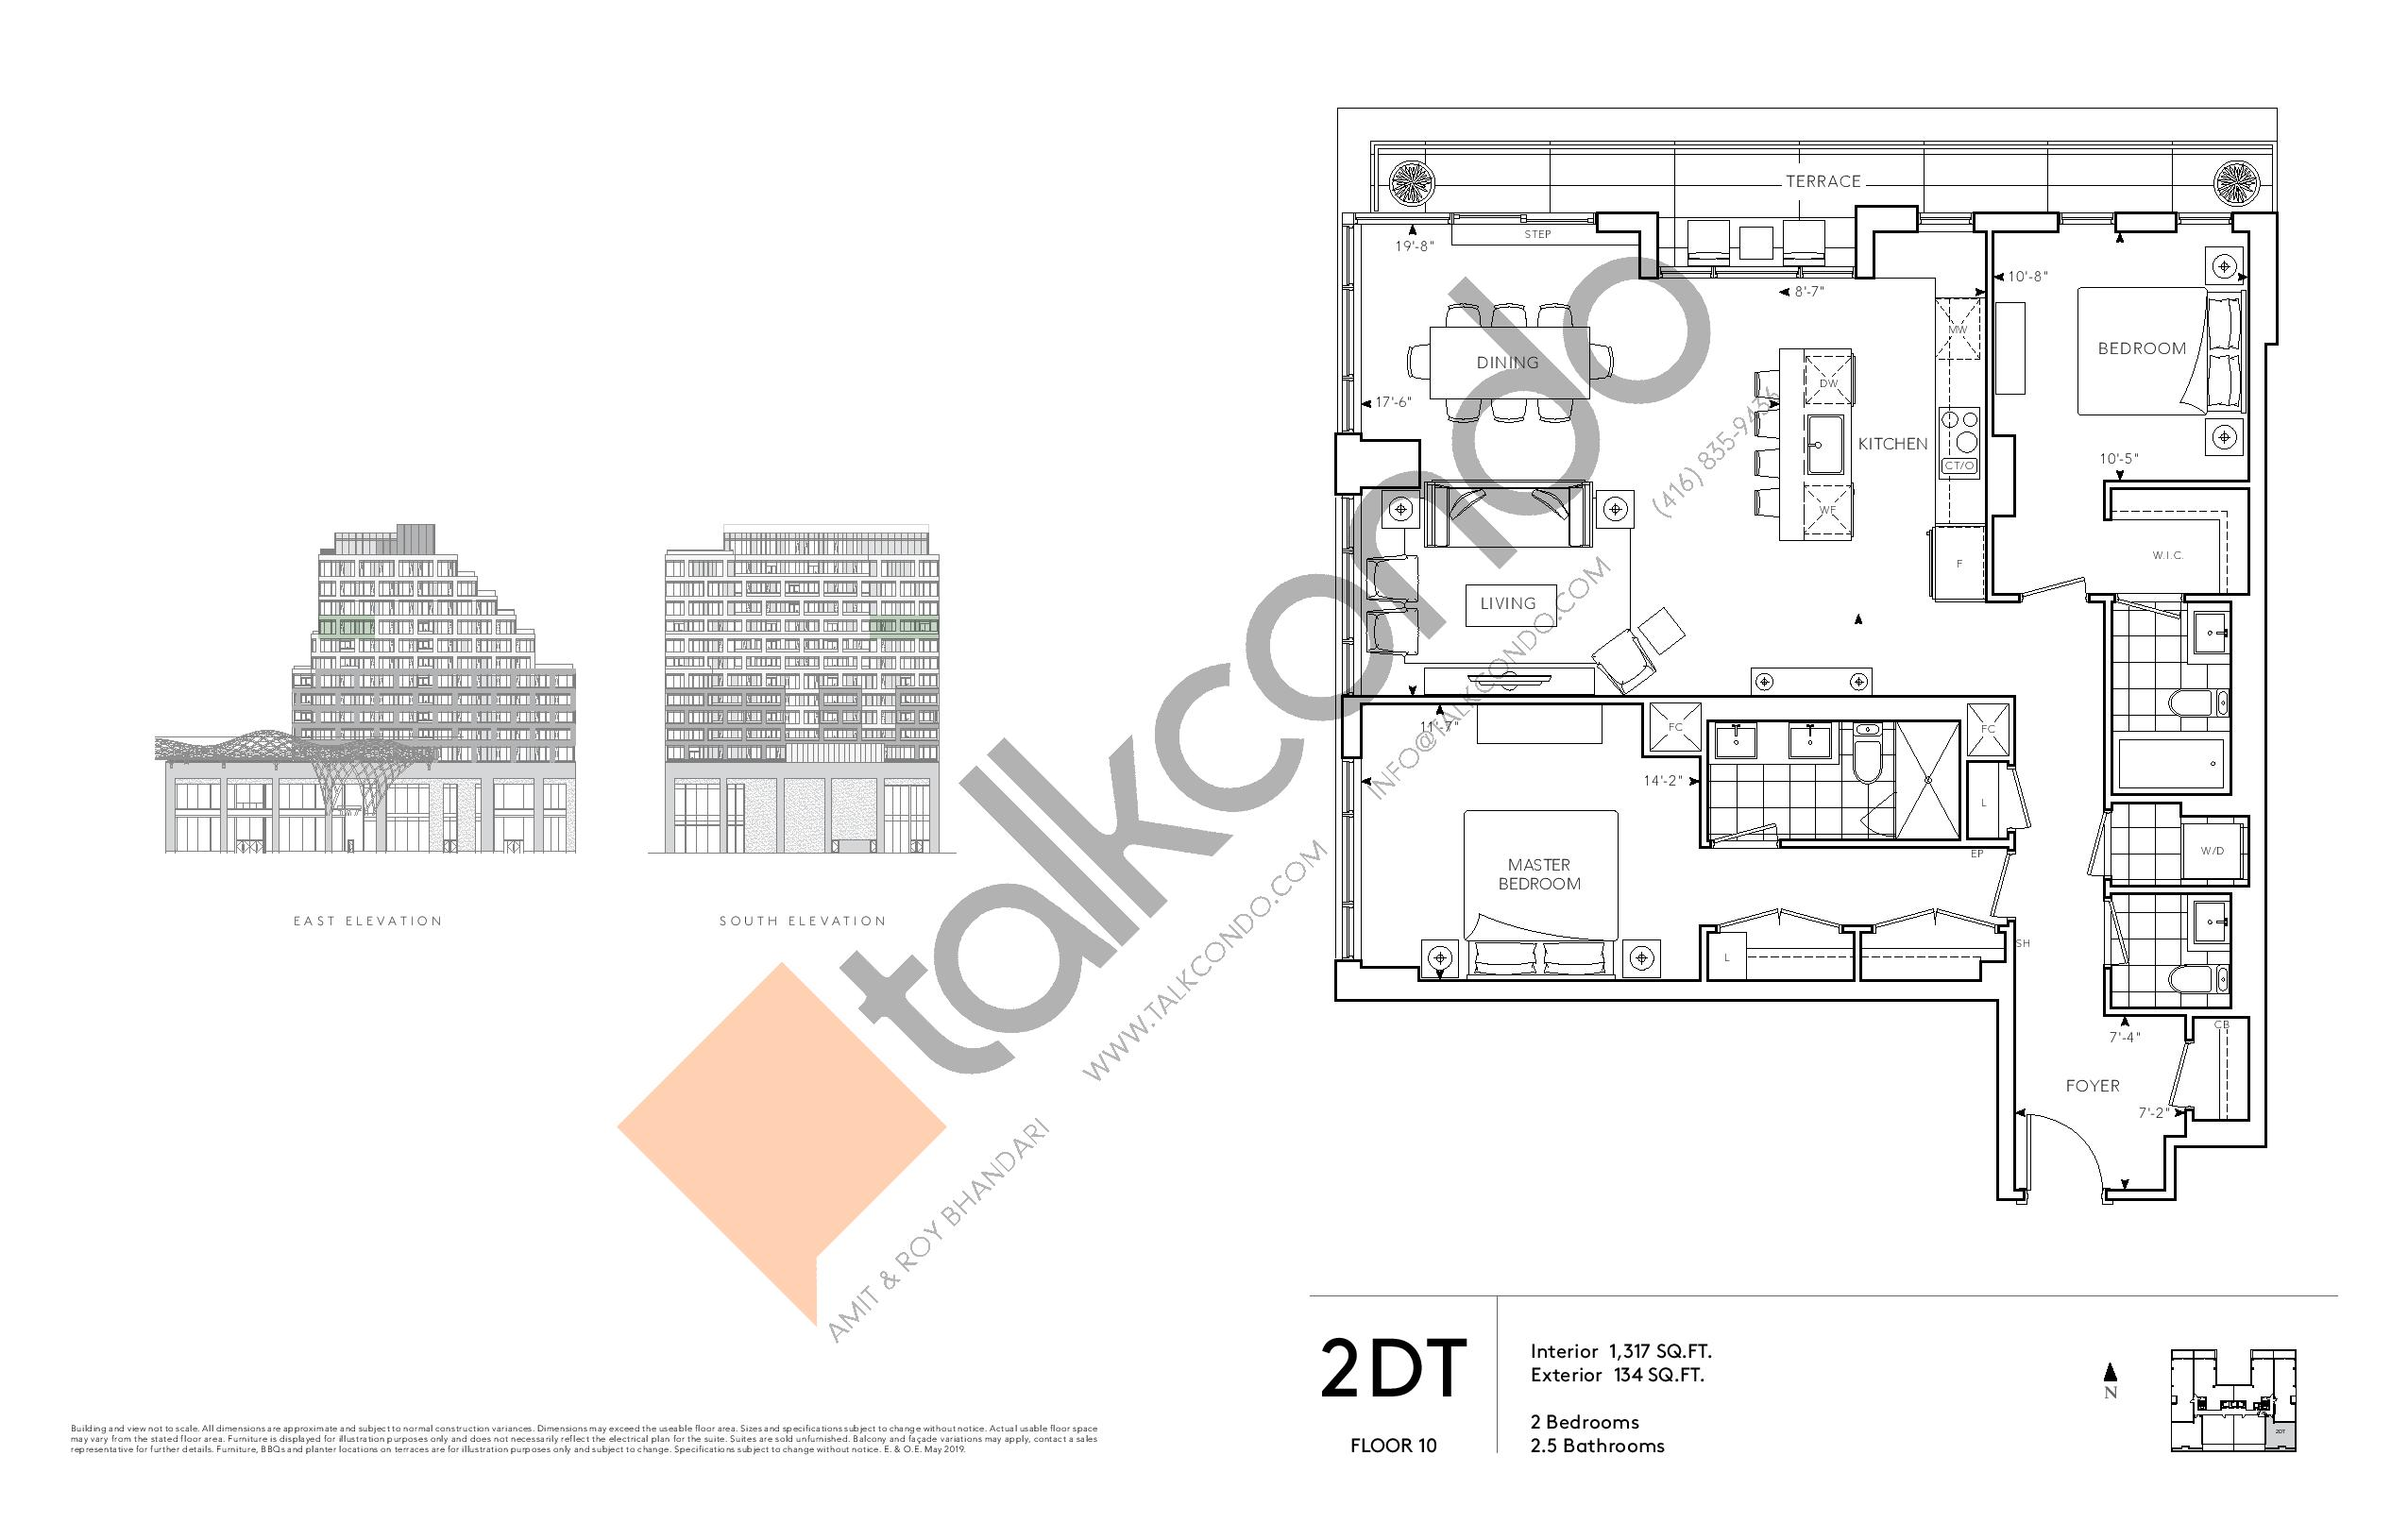 2DT - Signature Series Floor Plan at Tridel at The Well Condos - 1317 sq.ft